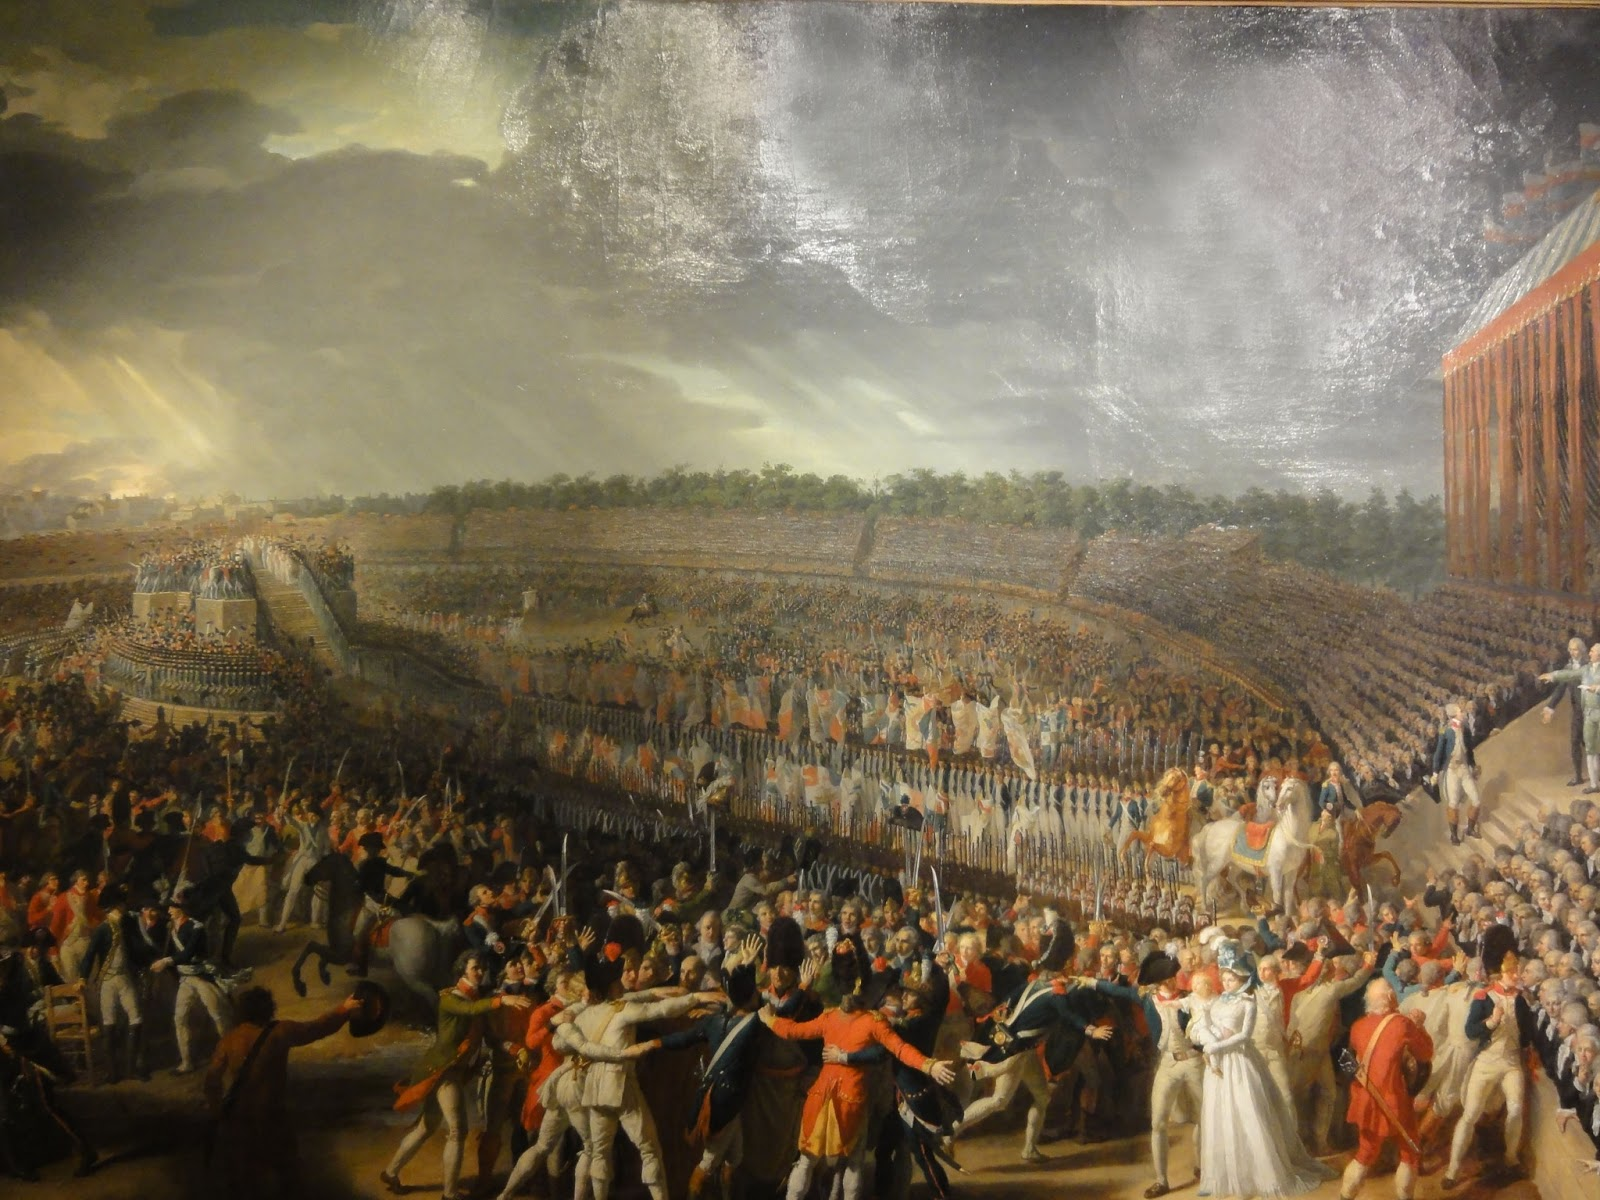 the revolutionary storming The french revolution: ideas and ideologies the philosophe may have laid the egg, but was the bird hatched of a different breed maurice cranston discusses the intellectual origins and development of the french revolution.